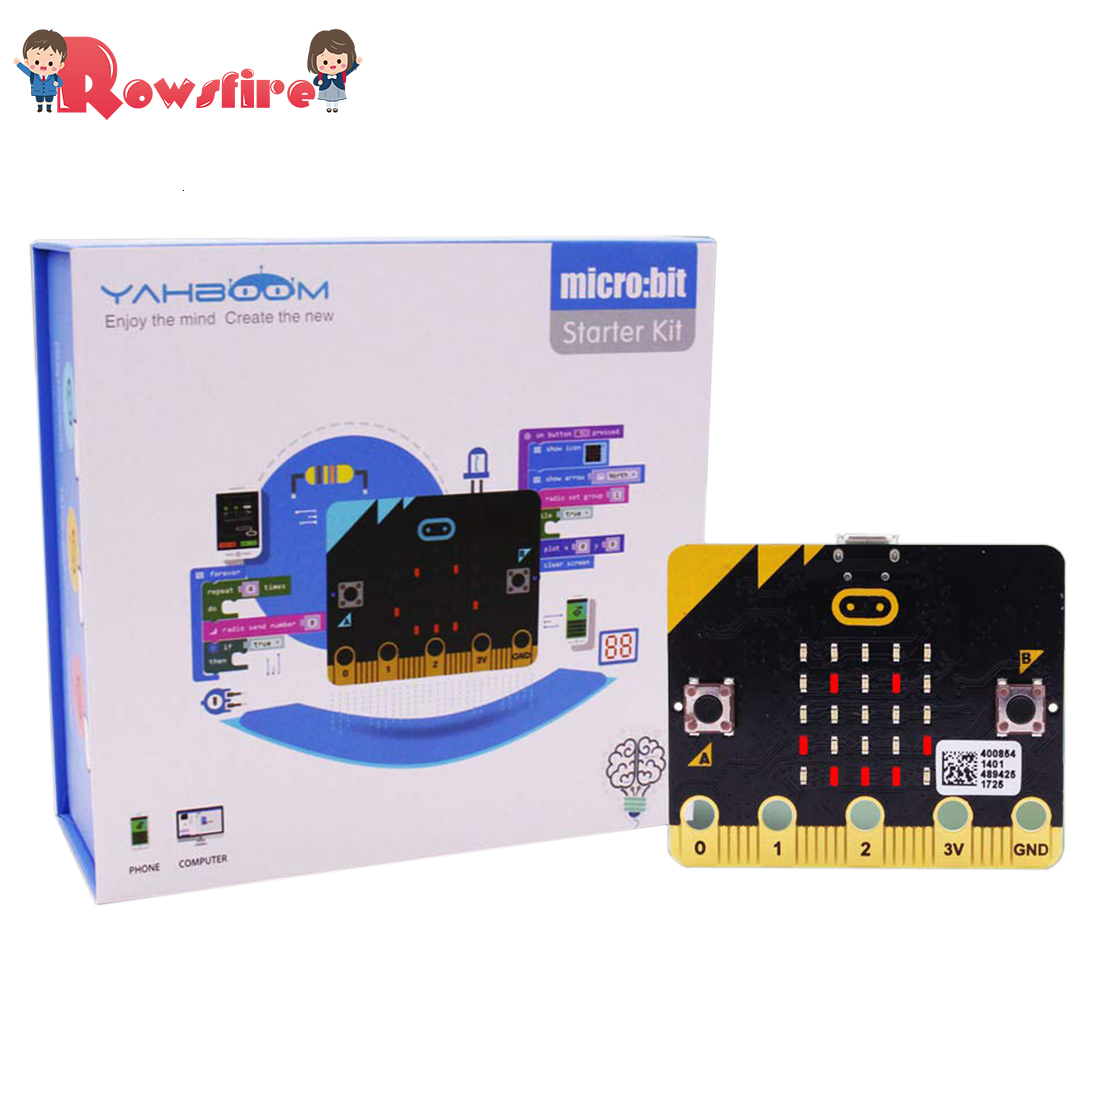 2Type 1 Pcs Micro:Bit Kit Starter Learning Kit Micro Bit Board Graphical Programmable STEM Toys With Guidance Manual For Kids